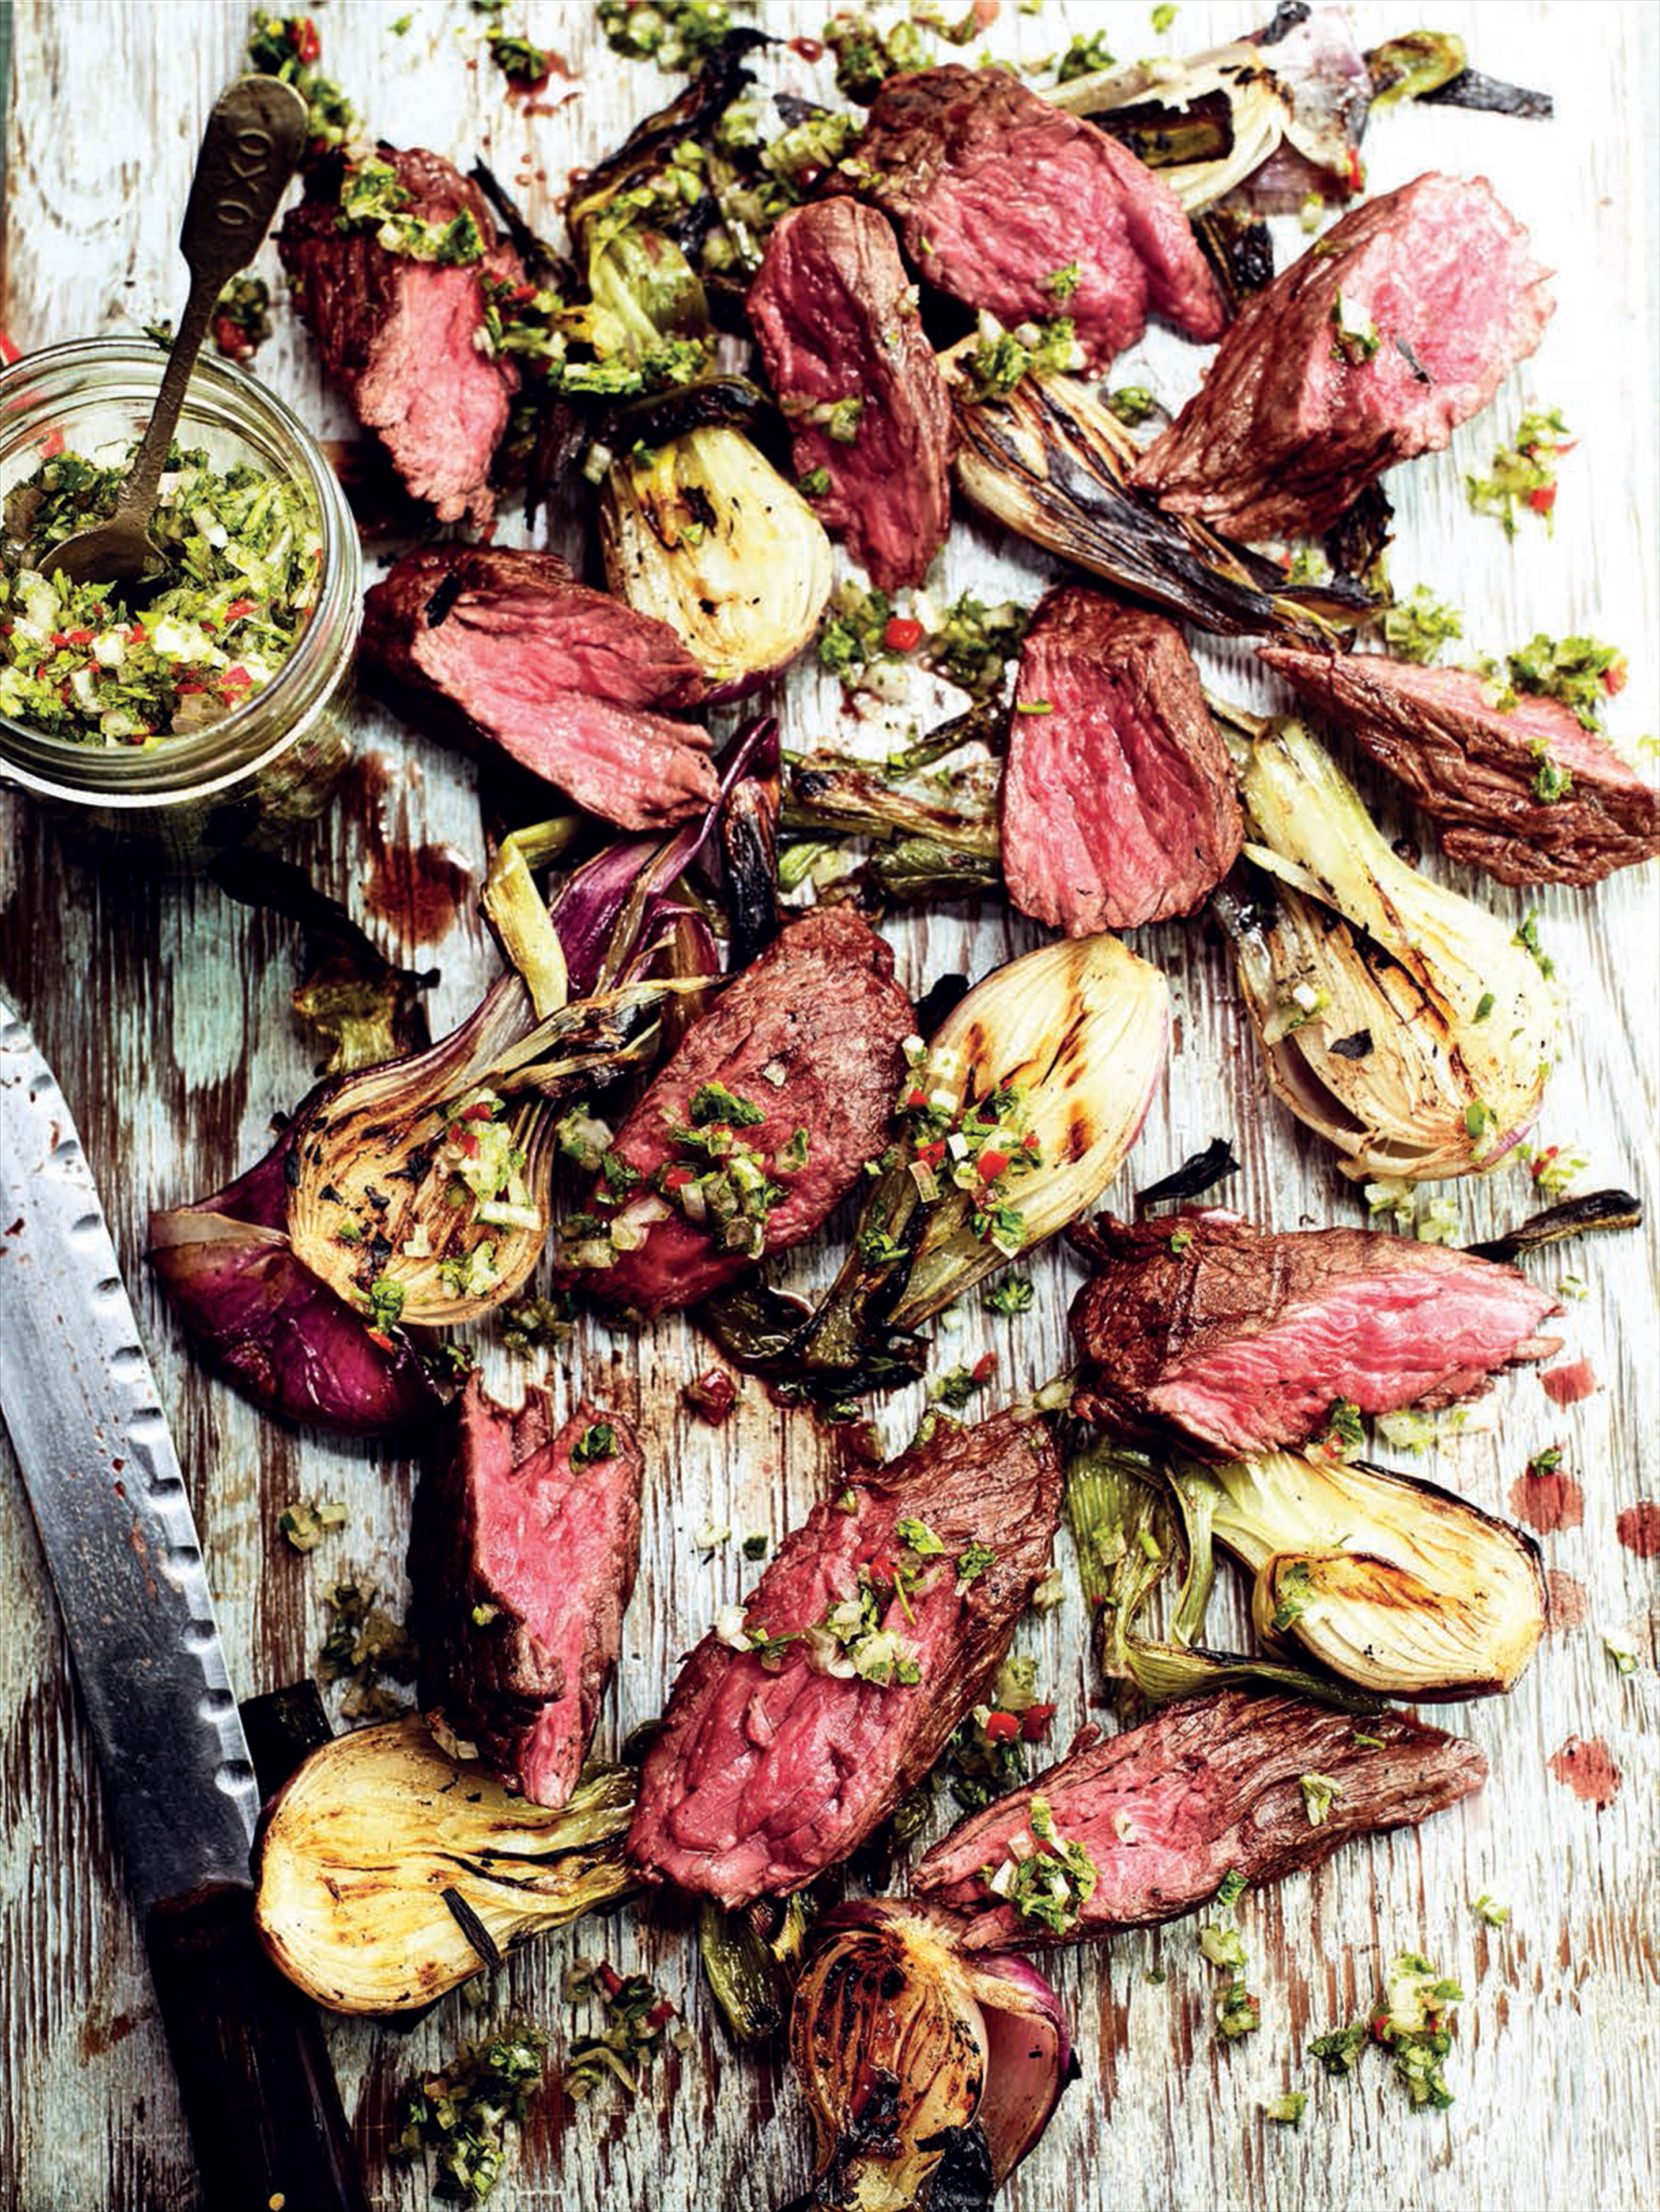 Marinated and grilled beef bavette with smoky salad onions